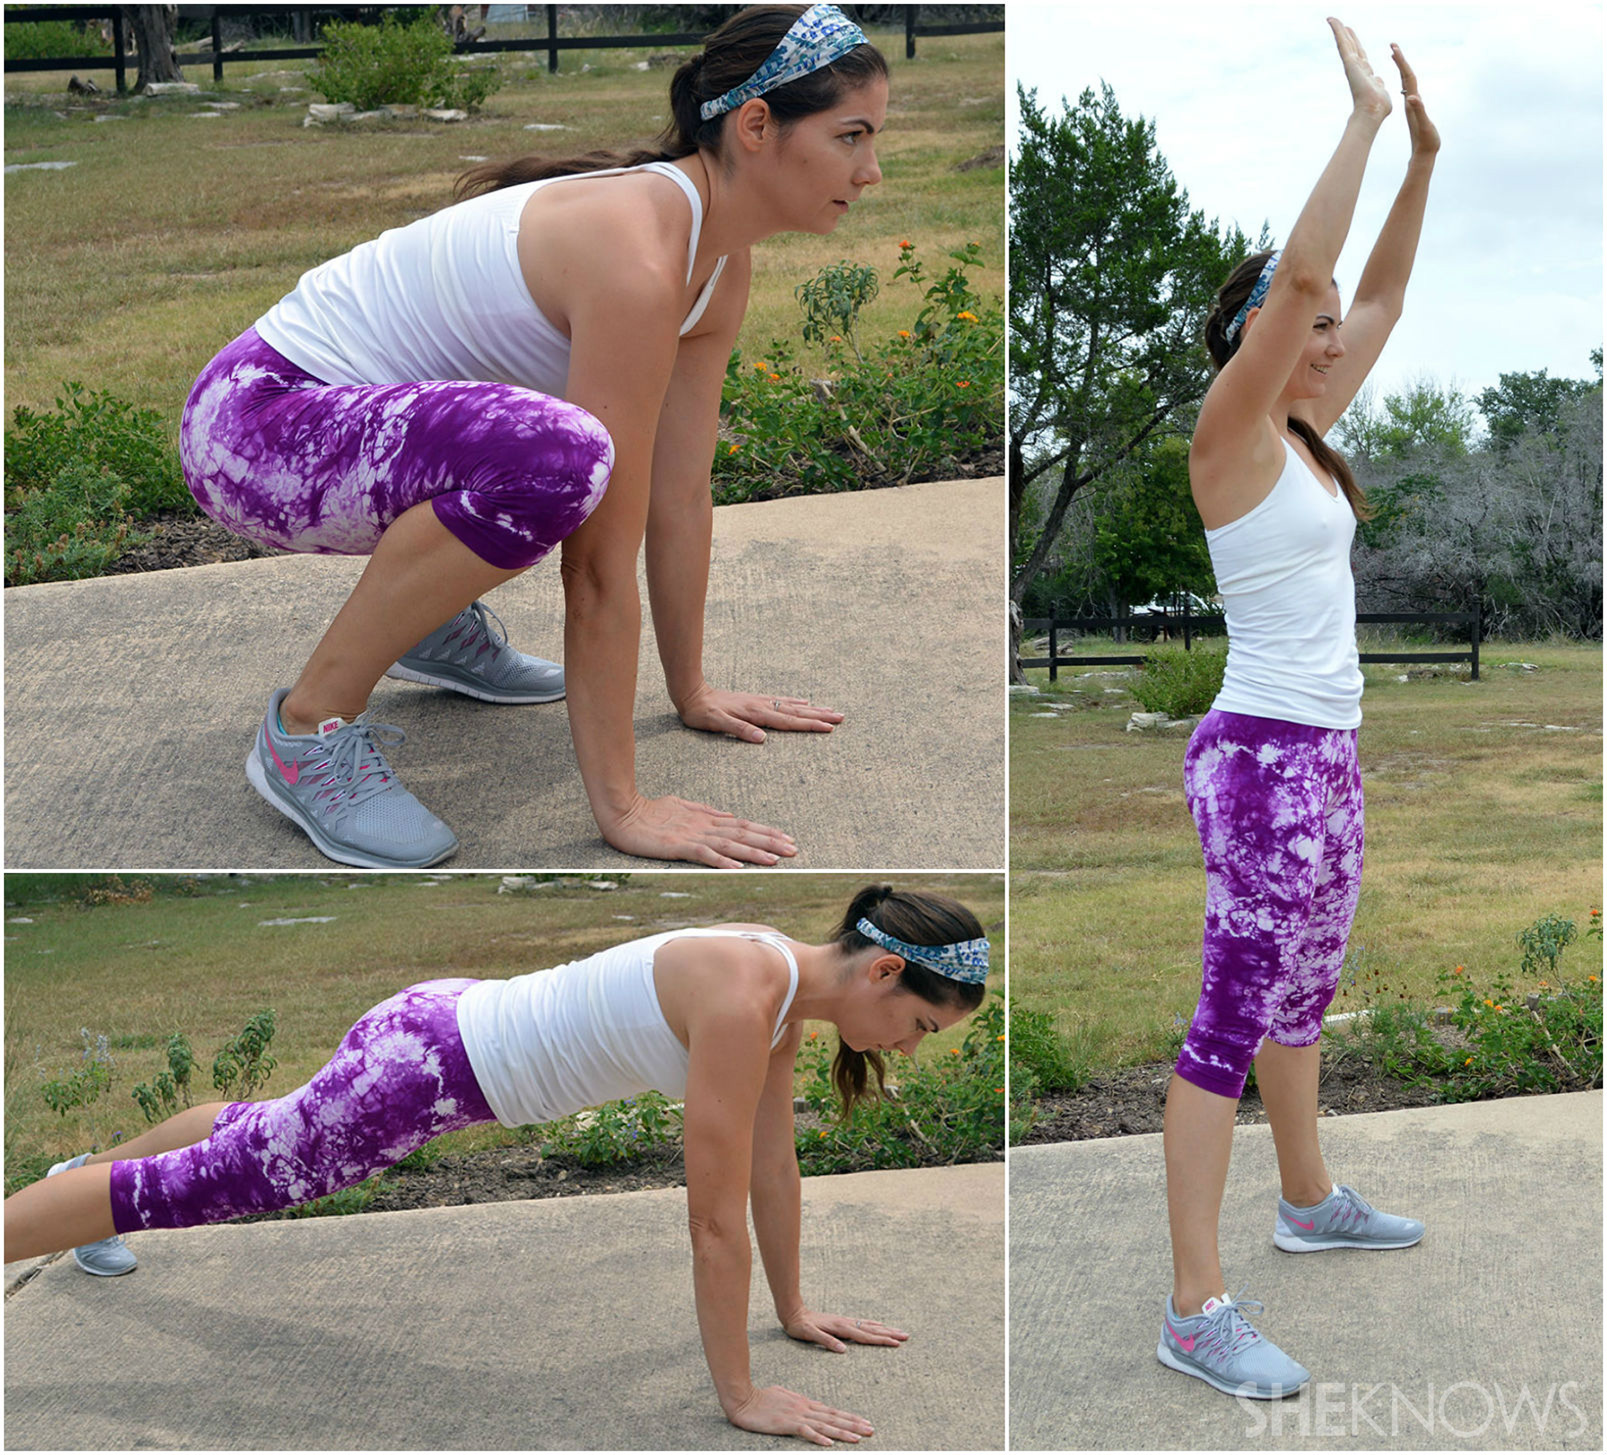 Burpees: 10 total repetitions